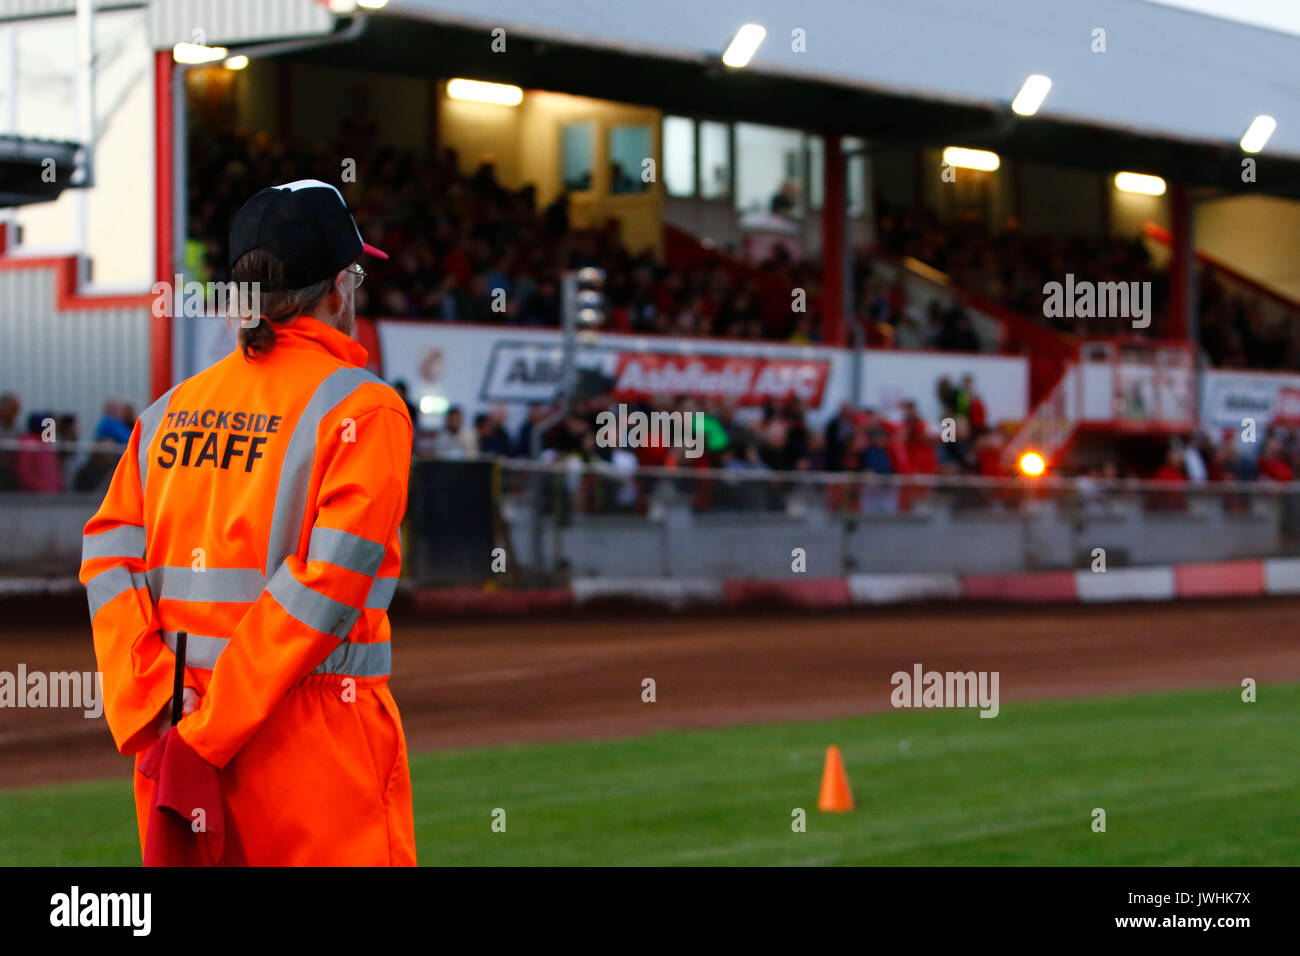 Glasgow, Scotland, UK. 12th August, 2017. The unsung heros of motorsport who withouth the dedicated guys who give up their time to marshall and maintain the track on raceday non of it would be possible. Well done guys. Credit: Colin Poultney/Alamy Live News - Stock Image